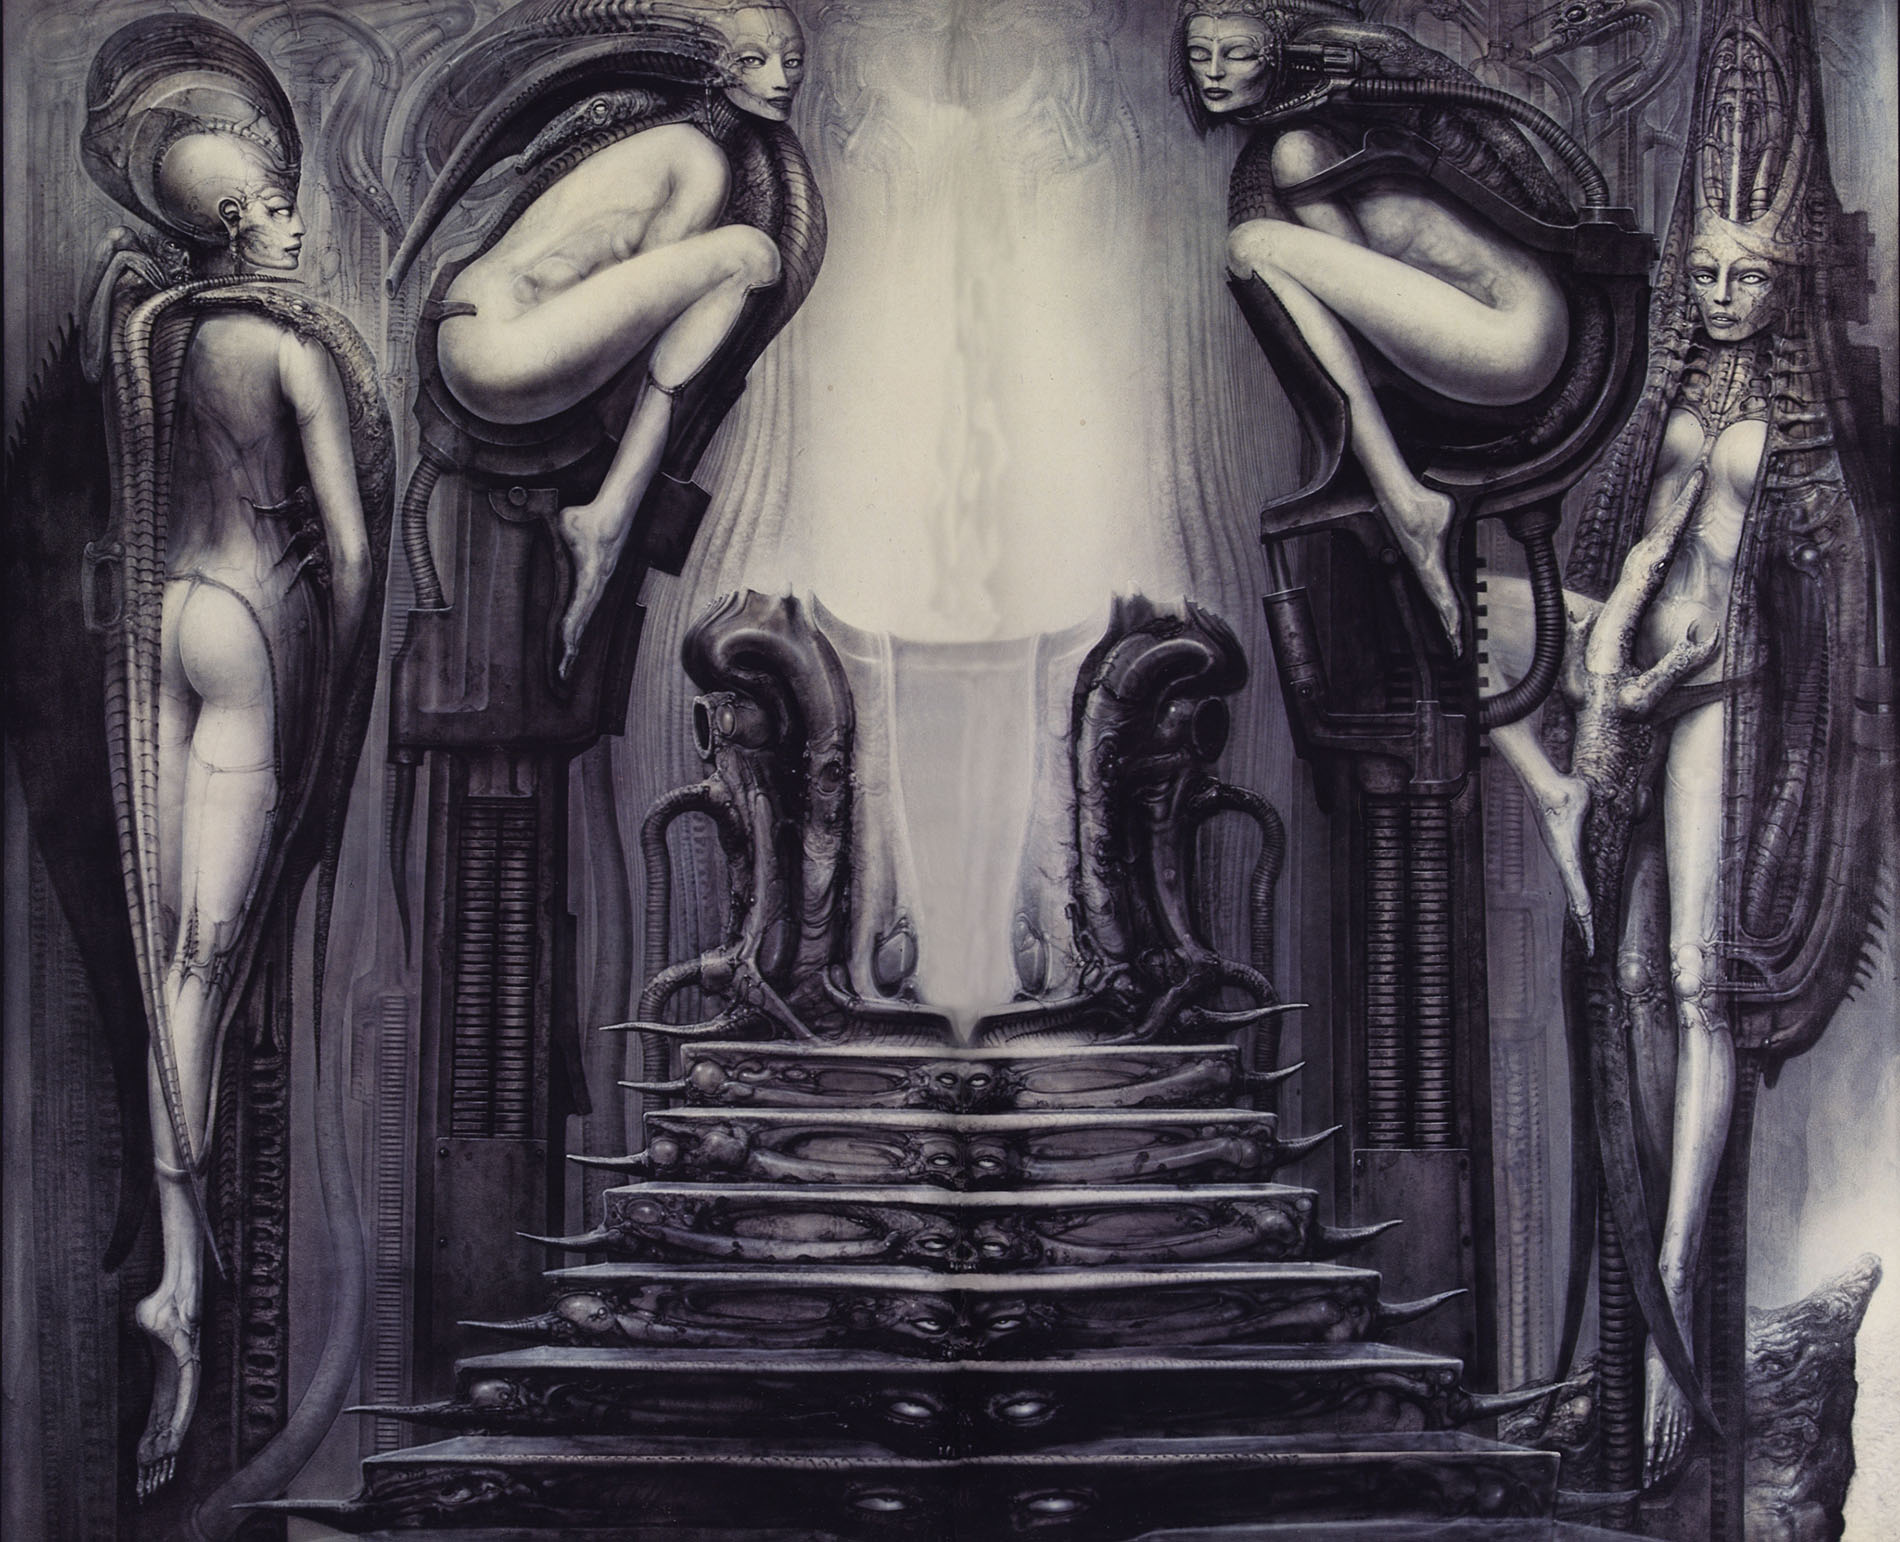 H. R. Giger - Passage Temple: The Way of the Magician (1975)